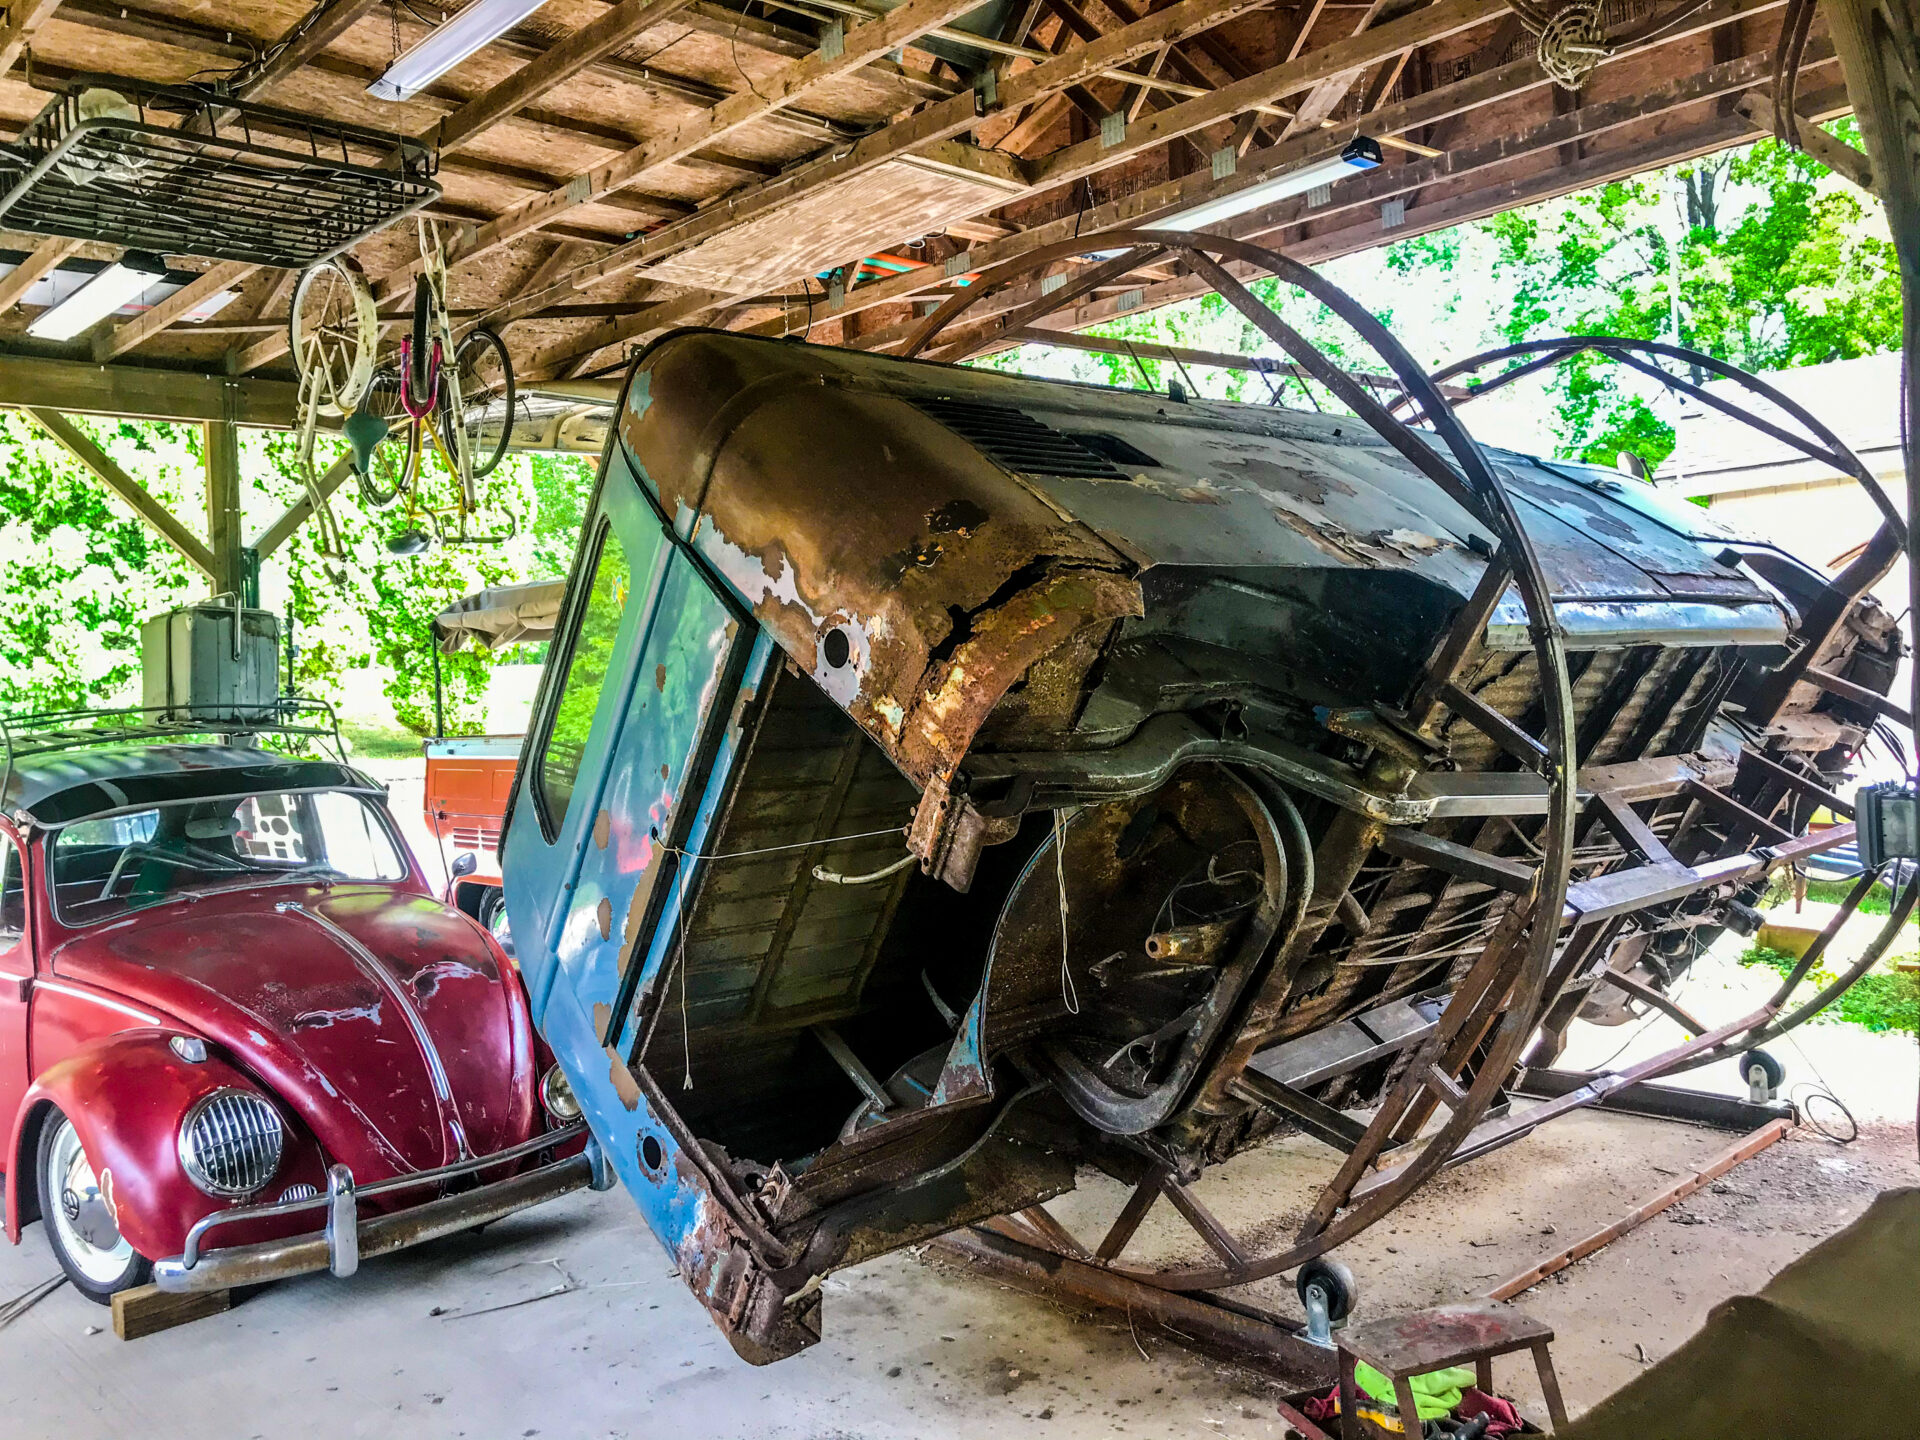 Suspended In Air - Unique VW Bus Art - Junk In This Truck